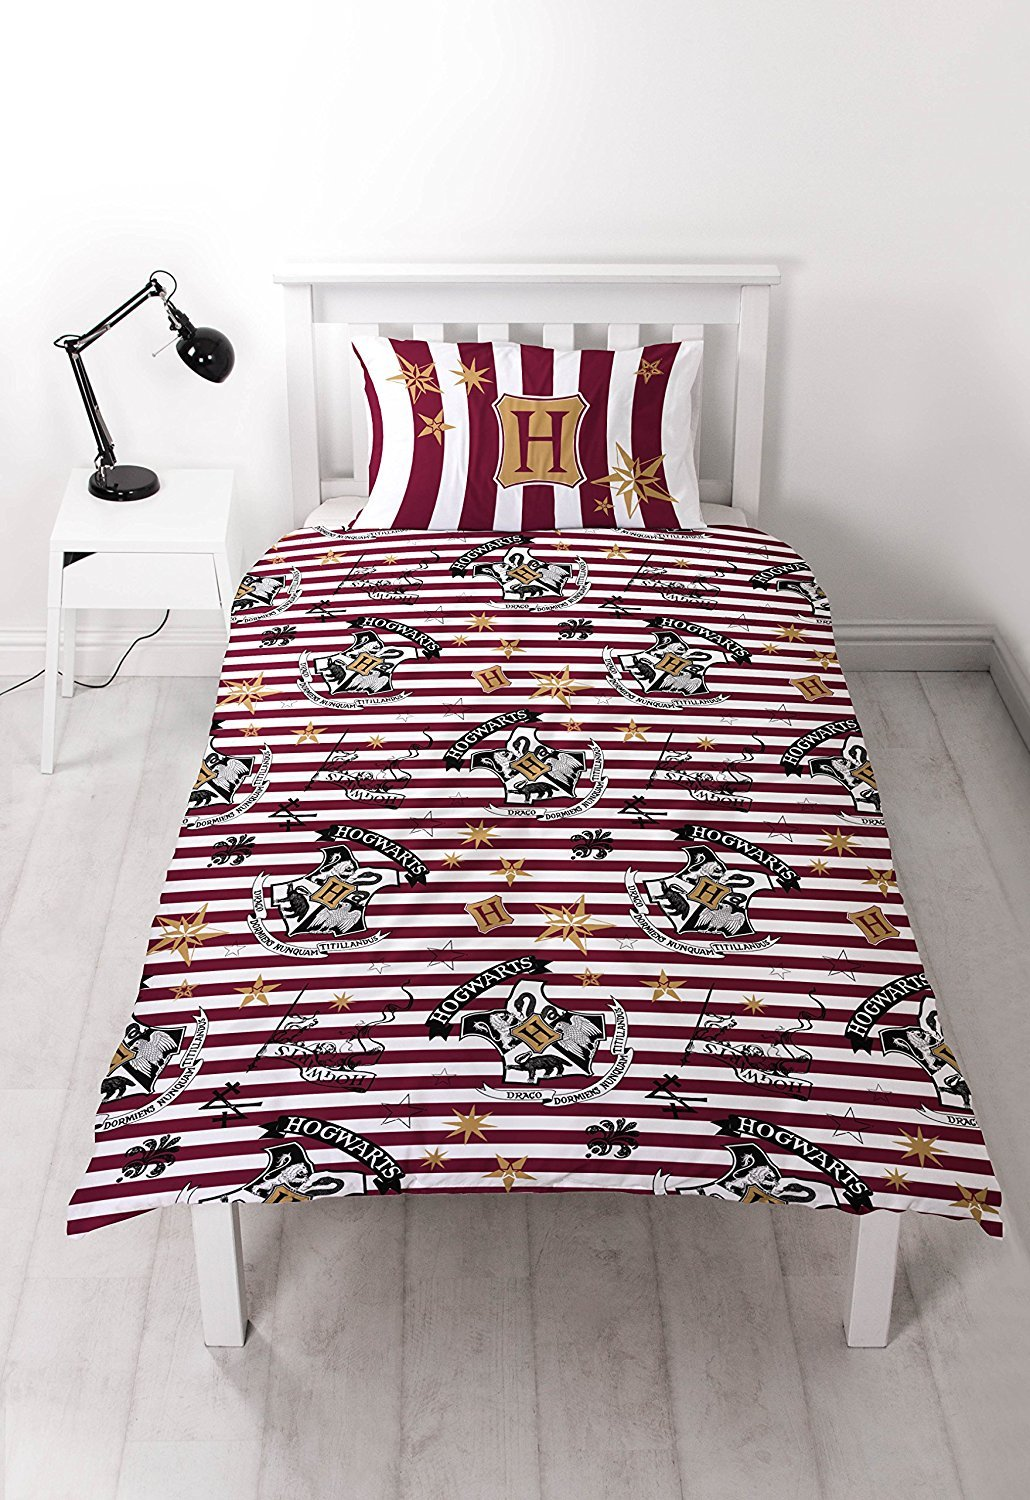 Studio World Harry Potter 'Hogwarts School' TWIN/TWIN XL Duvet Cover Set - Red & White & Gold